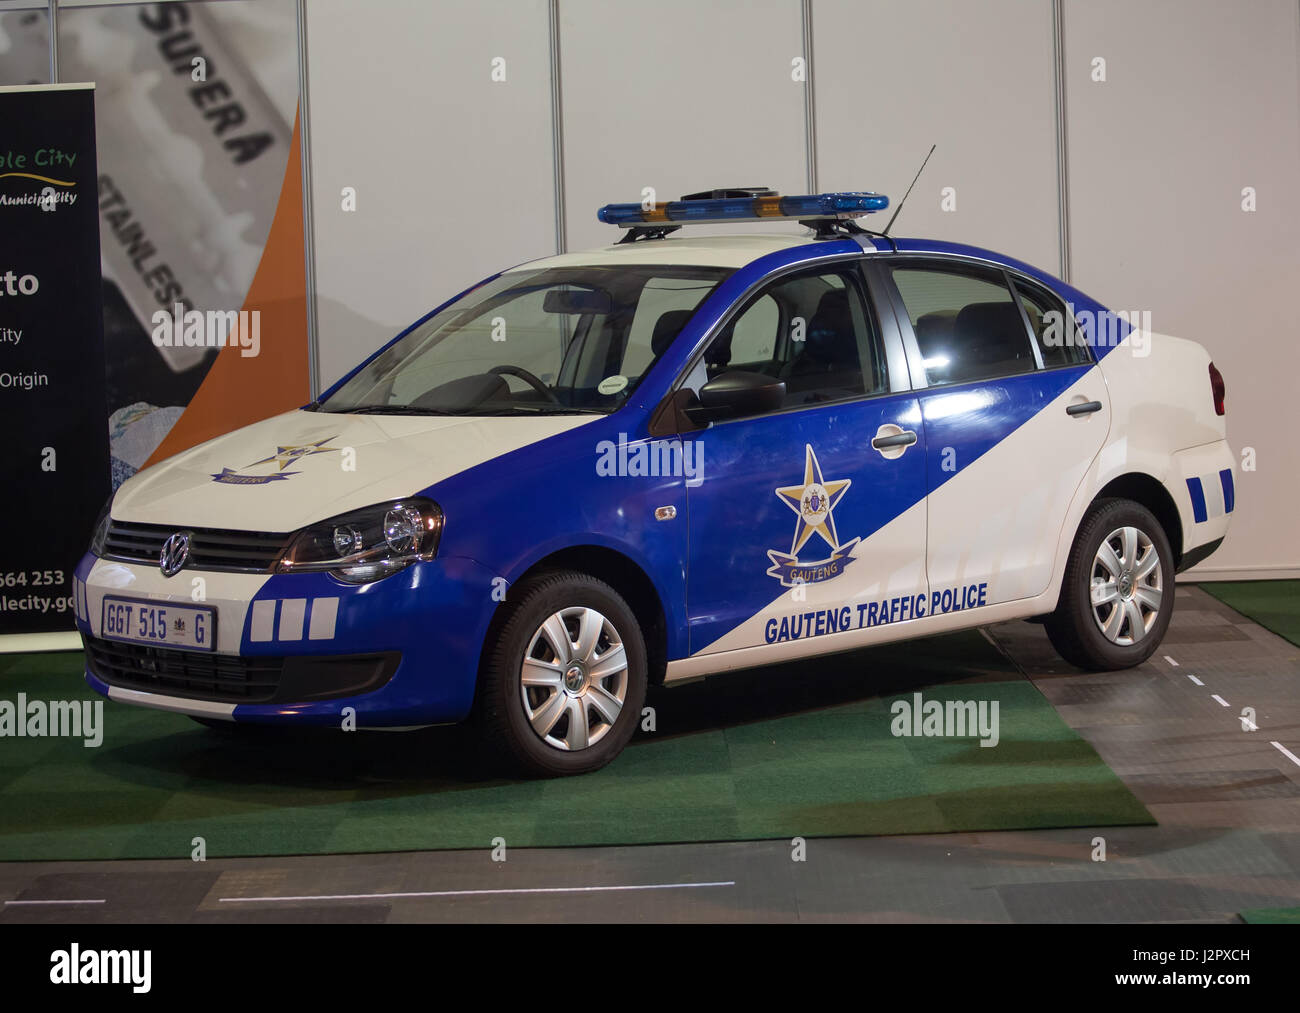 JOHANNESBURG, SOUTH AFRICA - APRIL 2017 Gauteng Traffic Police vehicle on display - Stock Image